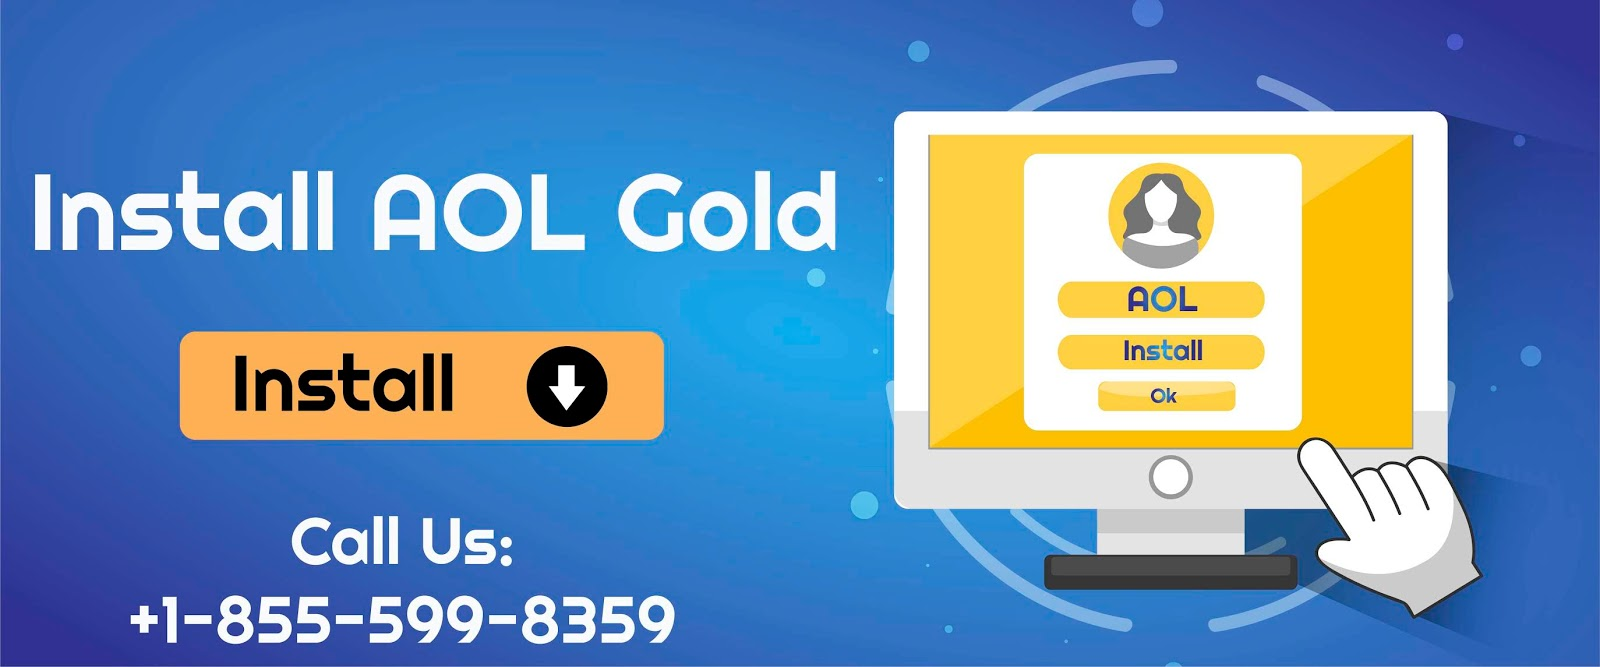 How to Install AOL Desktop Gold | +1 855 599 8359 ~ Email Help